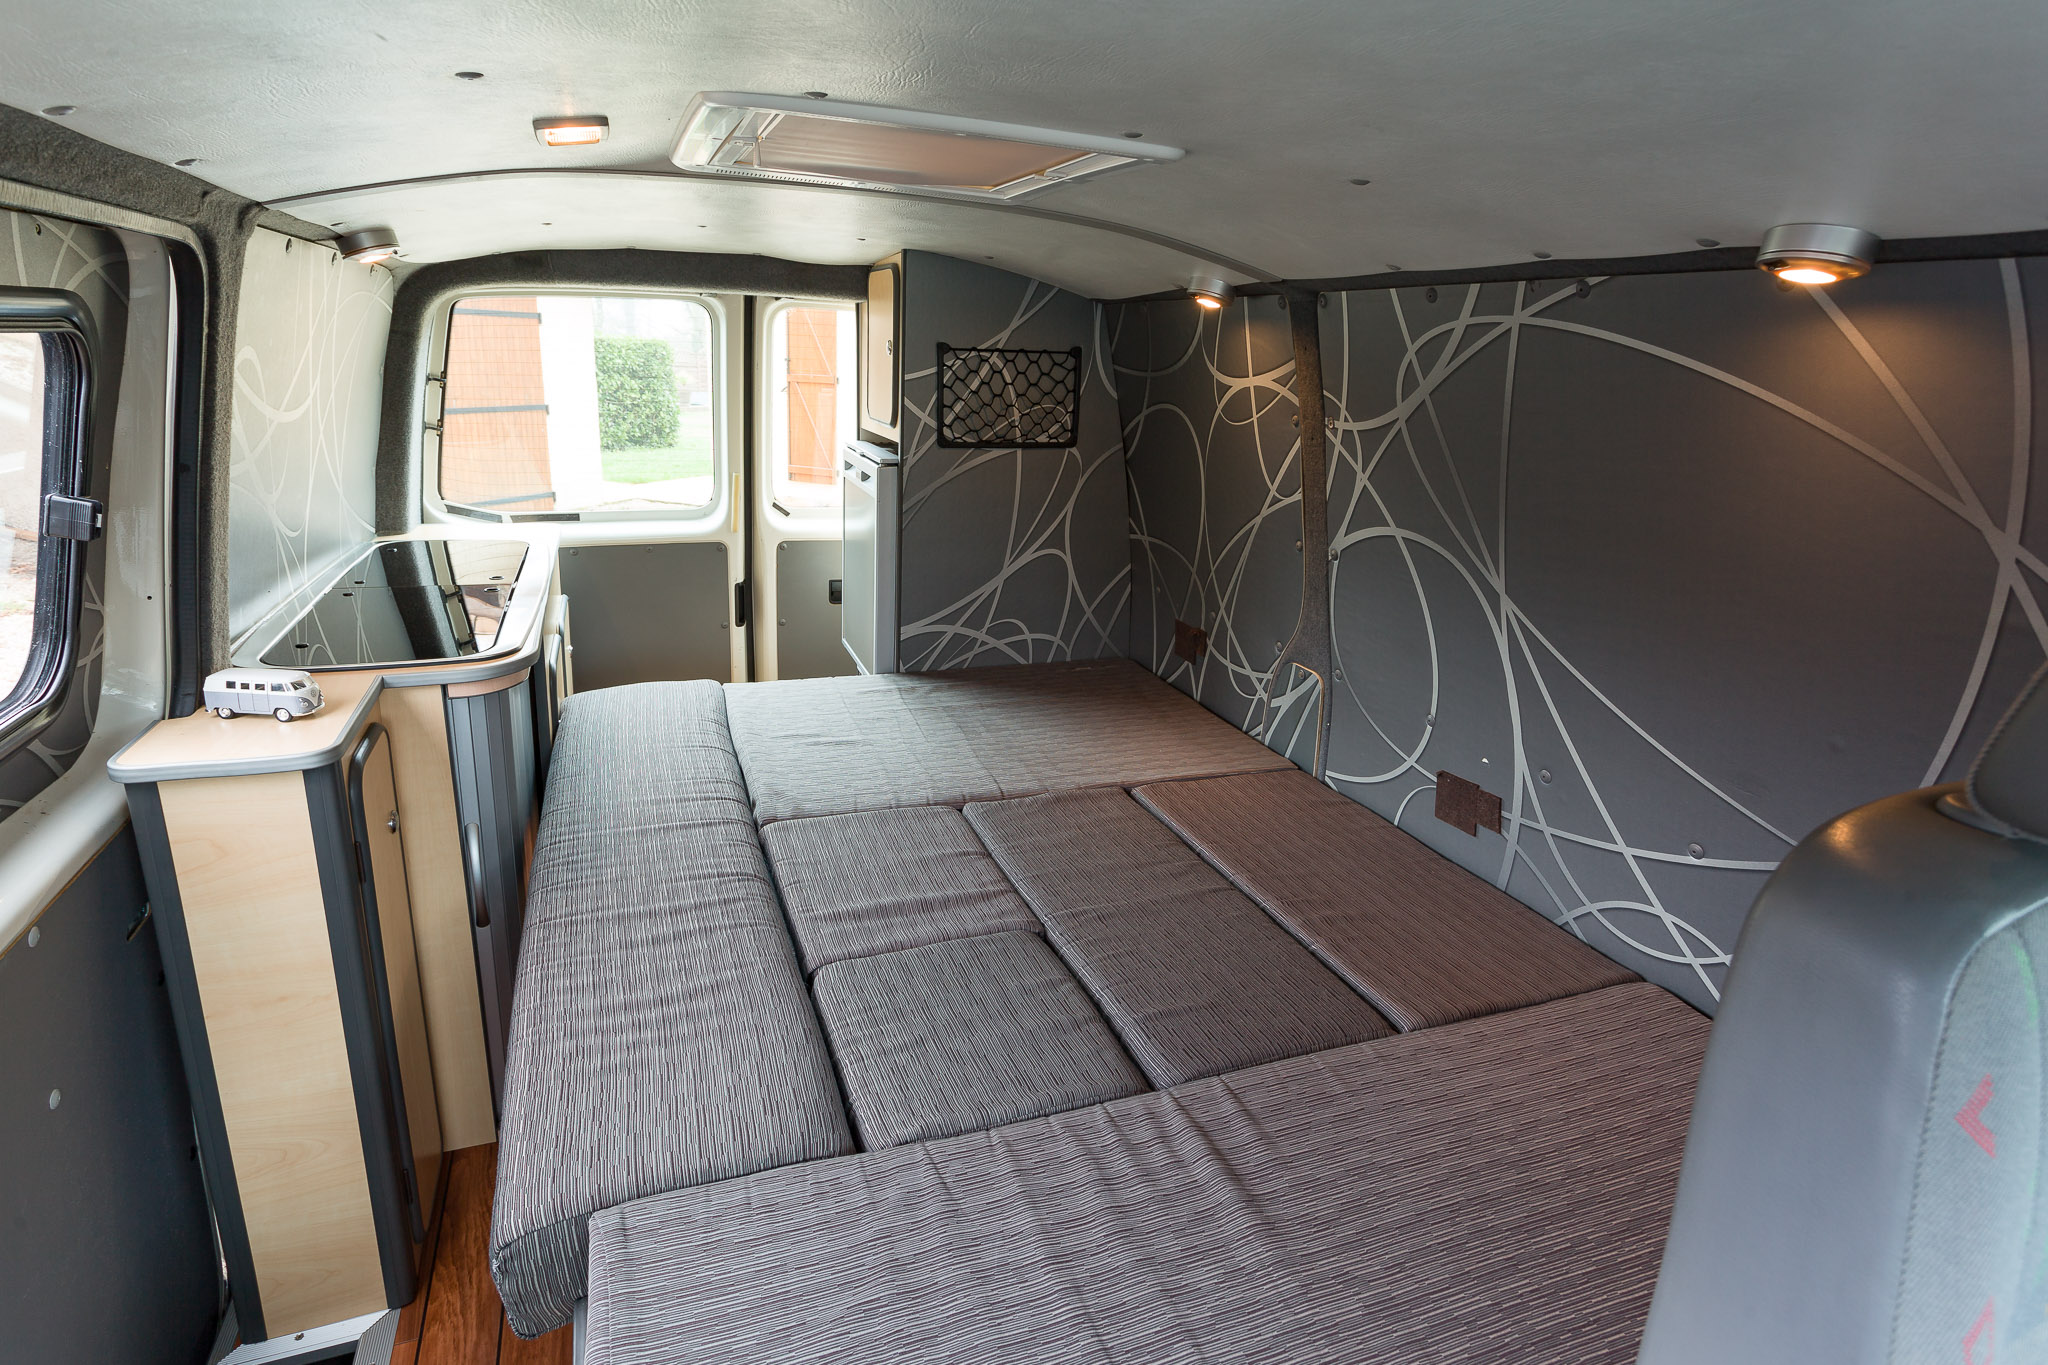 Amenagement interieur camping car for Auto interieur kuisen